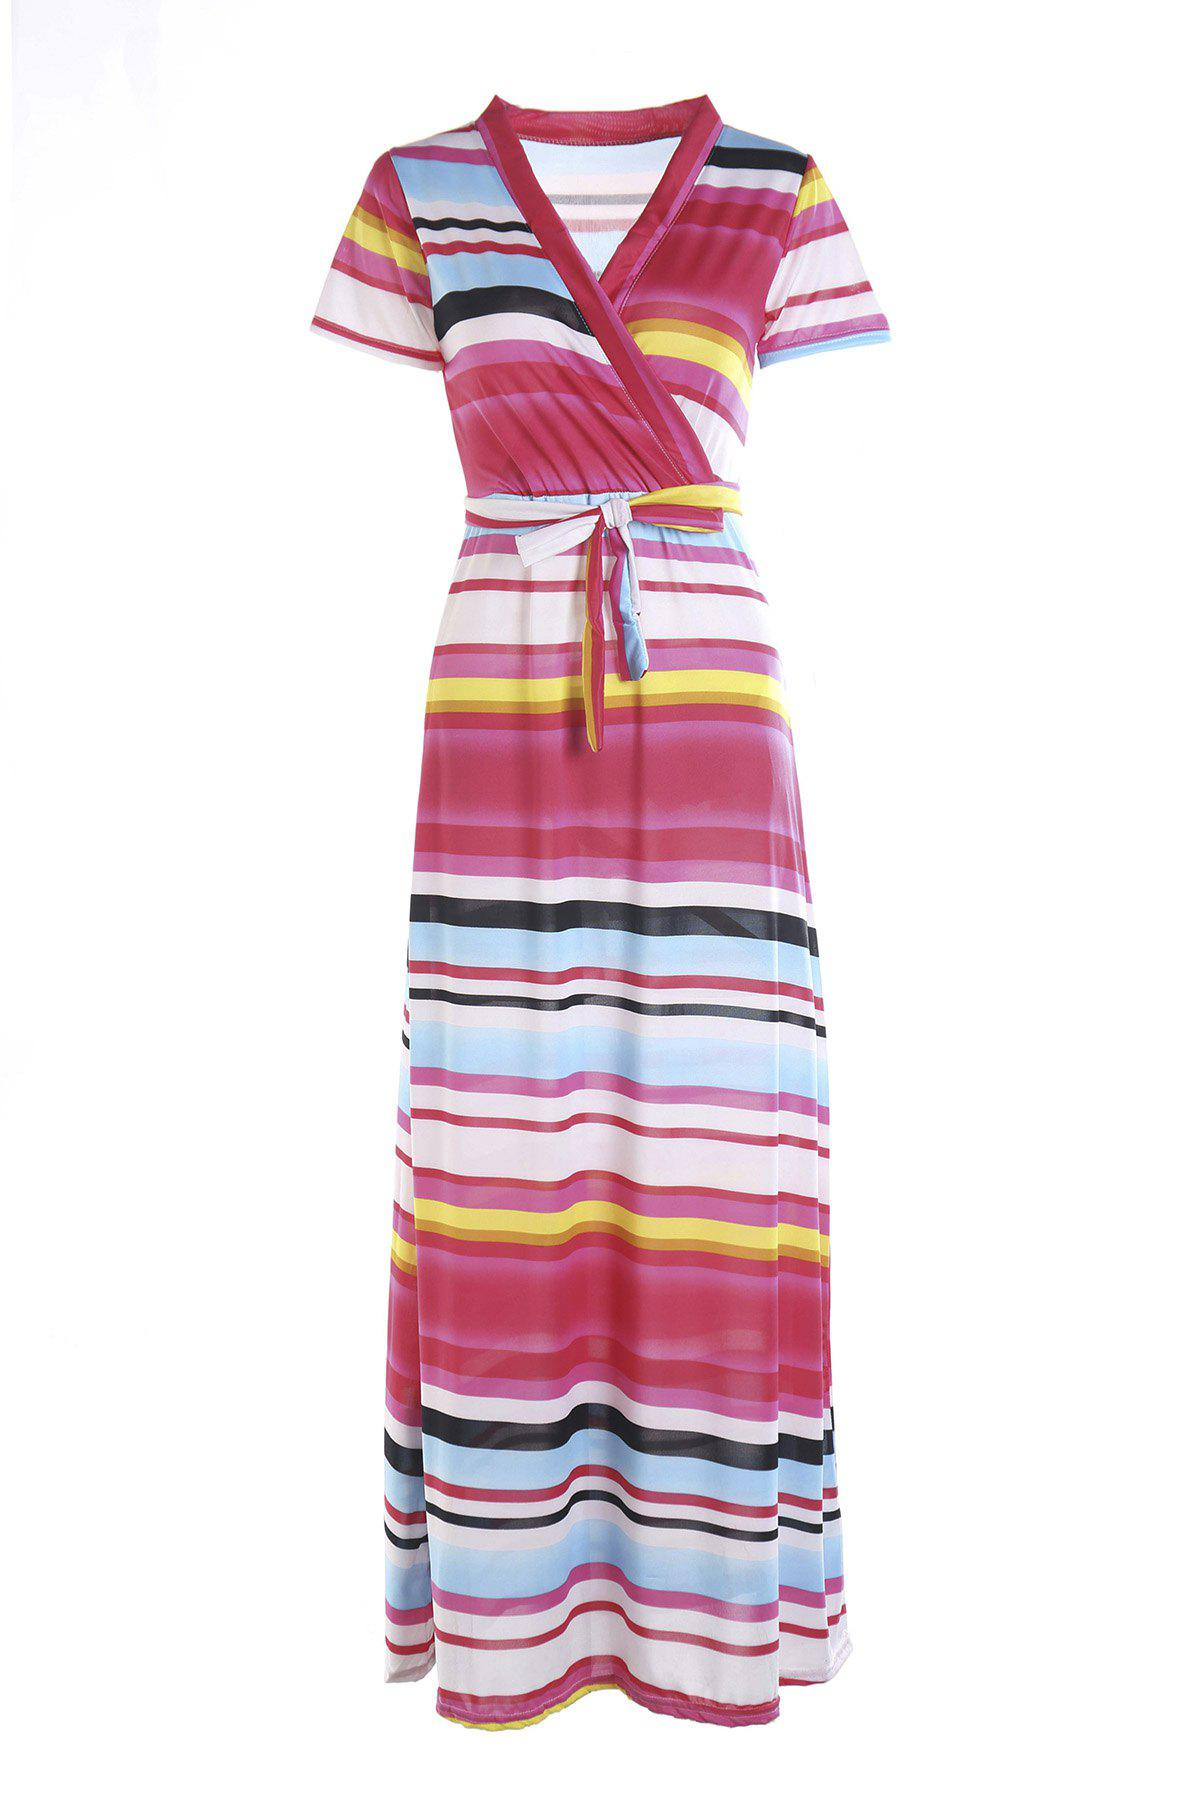 Alluring Short Sleeves Plunging Neck Striped Womens Maxi Dress